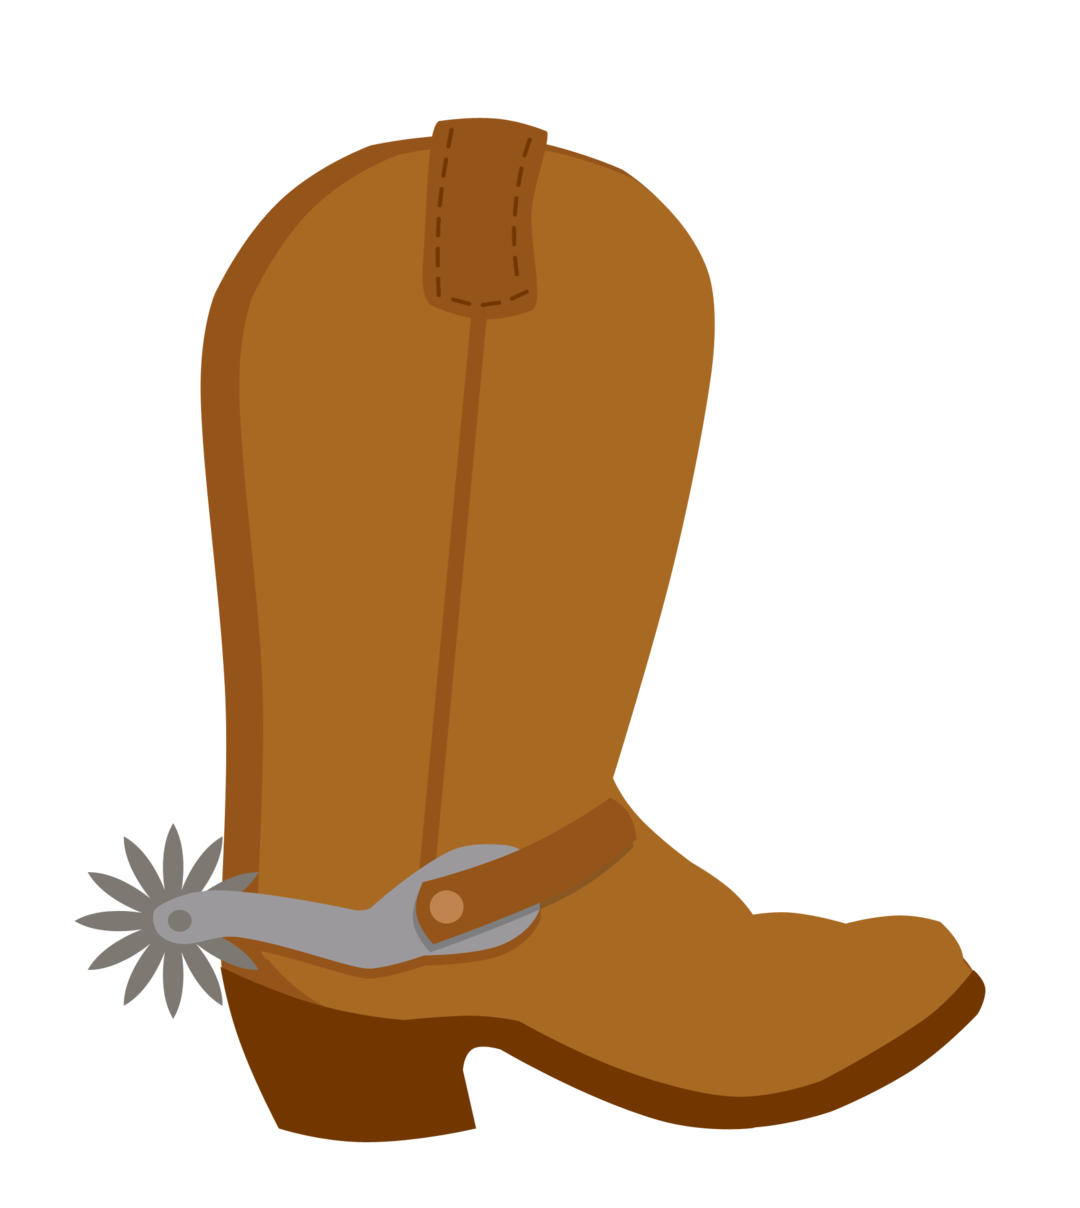 Safari clipart boot #7